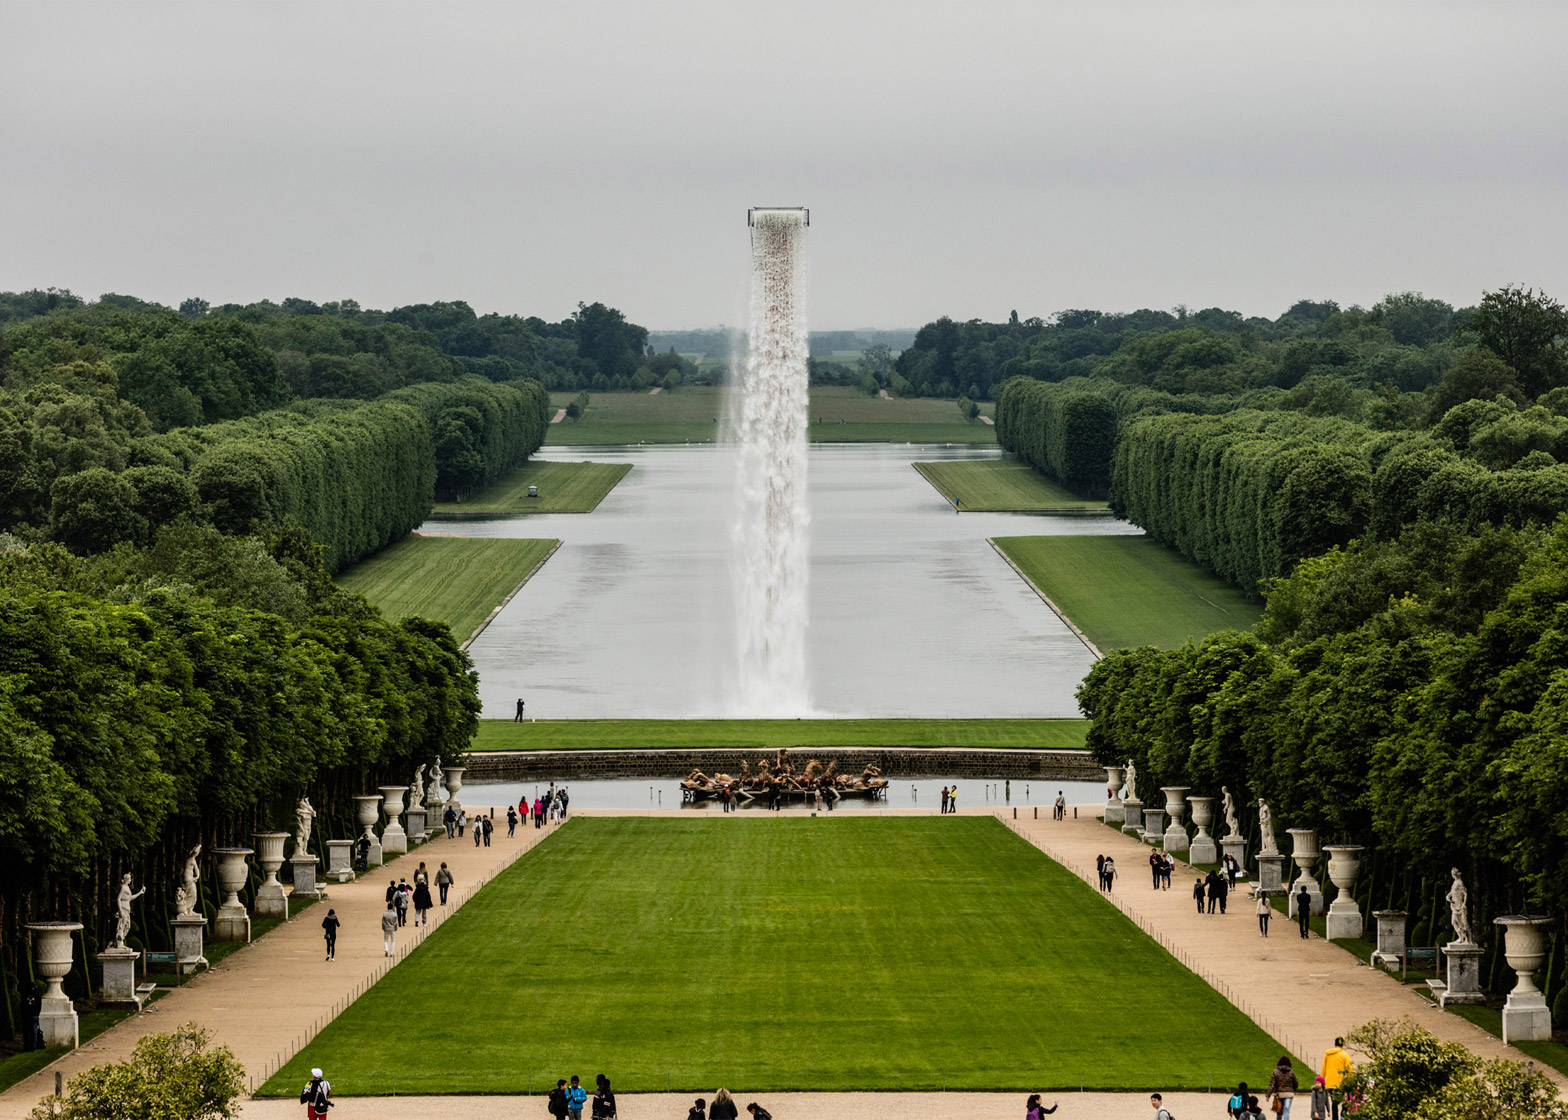 Fascinating Engineering Floating Waterfalls in Versailles Olafur Eliasson